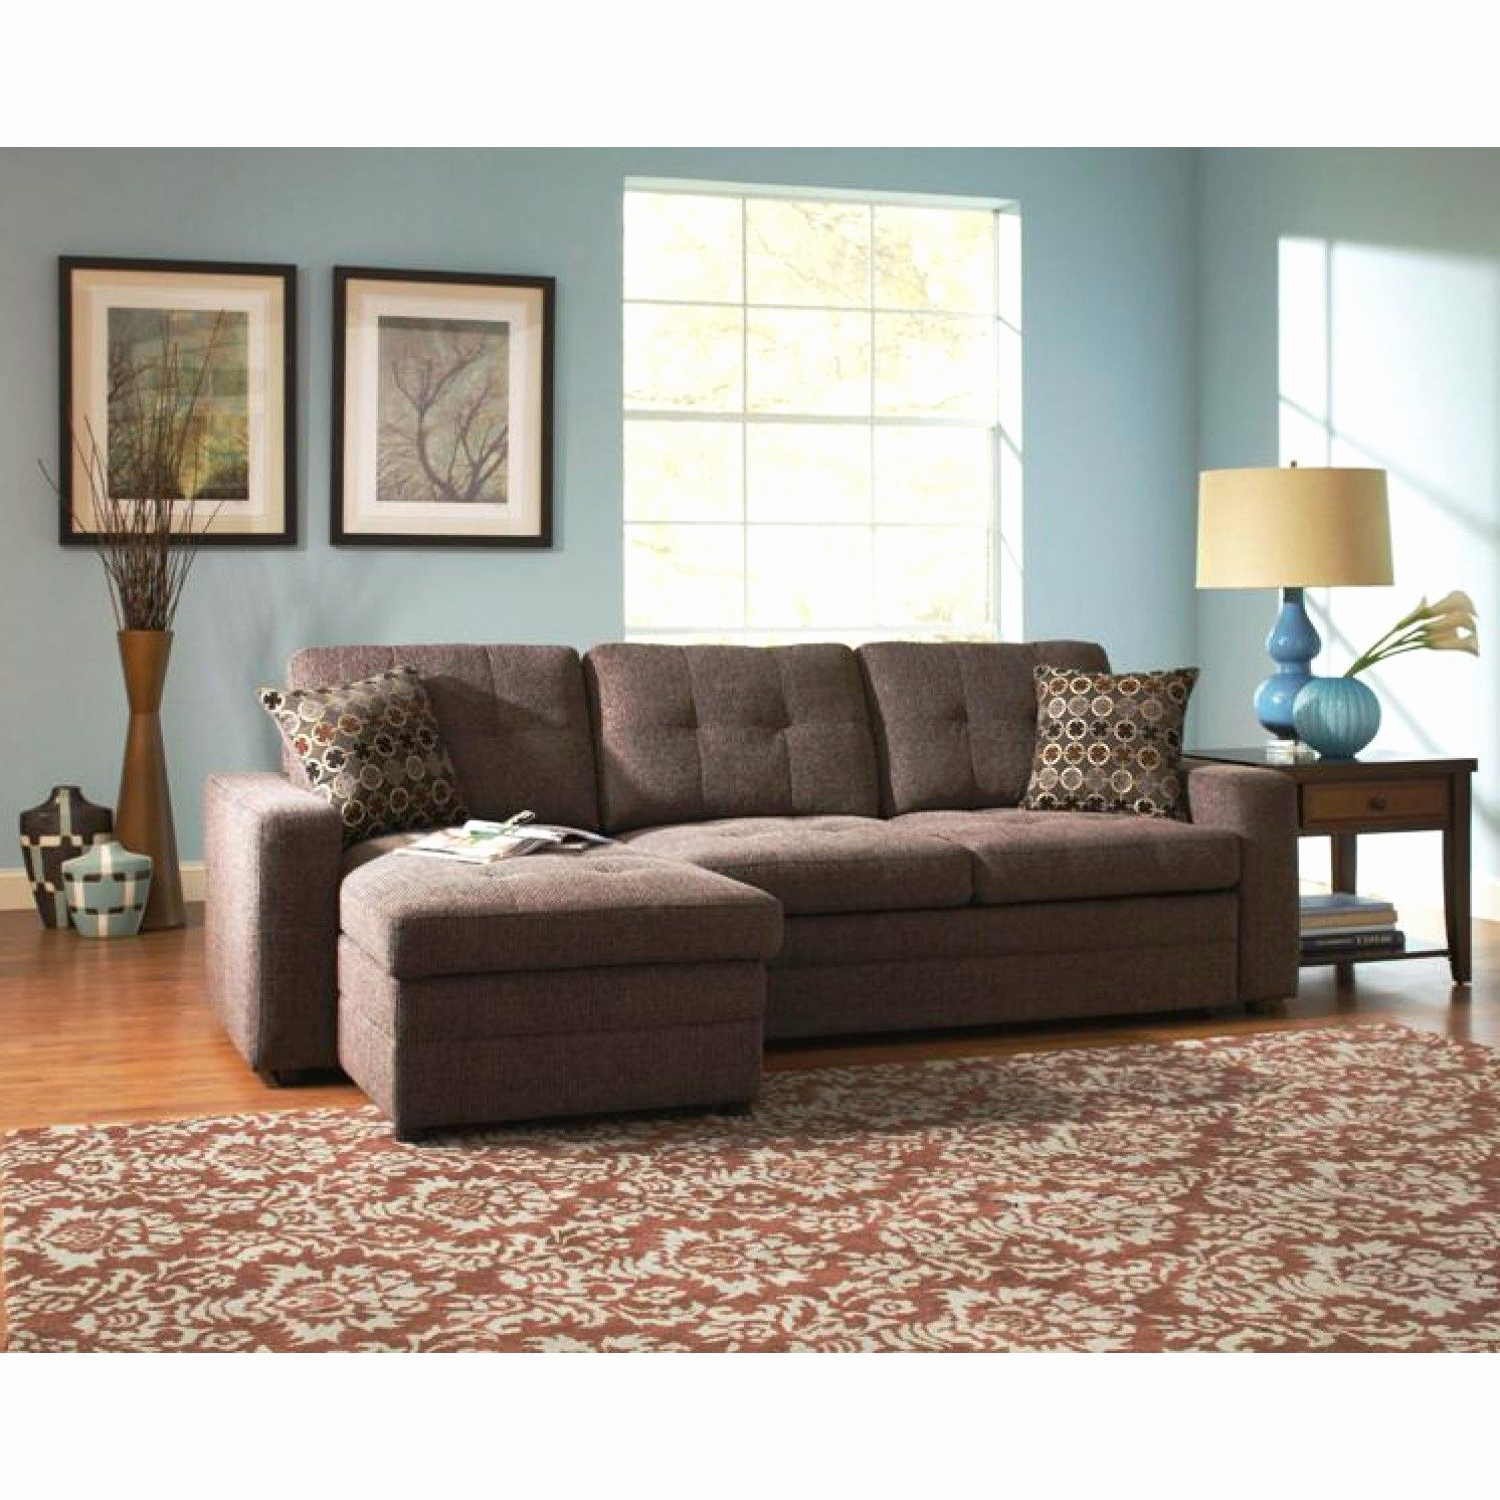 Favorite Norfolk Chocolate 3 Piece Sectionals With Laf Chaise Inside Best Of Sectional Sofa Sleepers Pictures Sectional Sofa Sleepers New (Gallery 6 of 20)